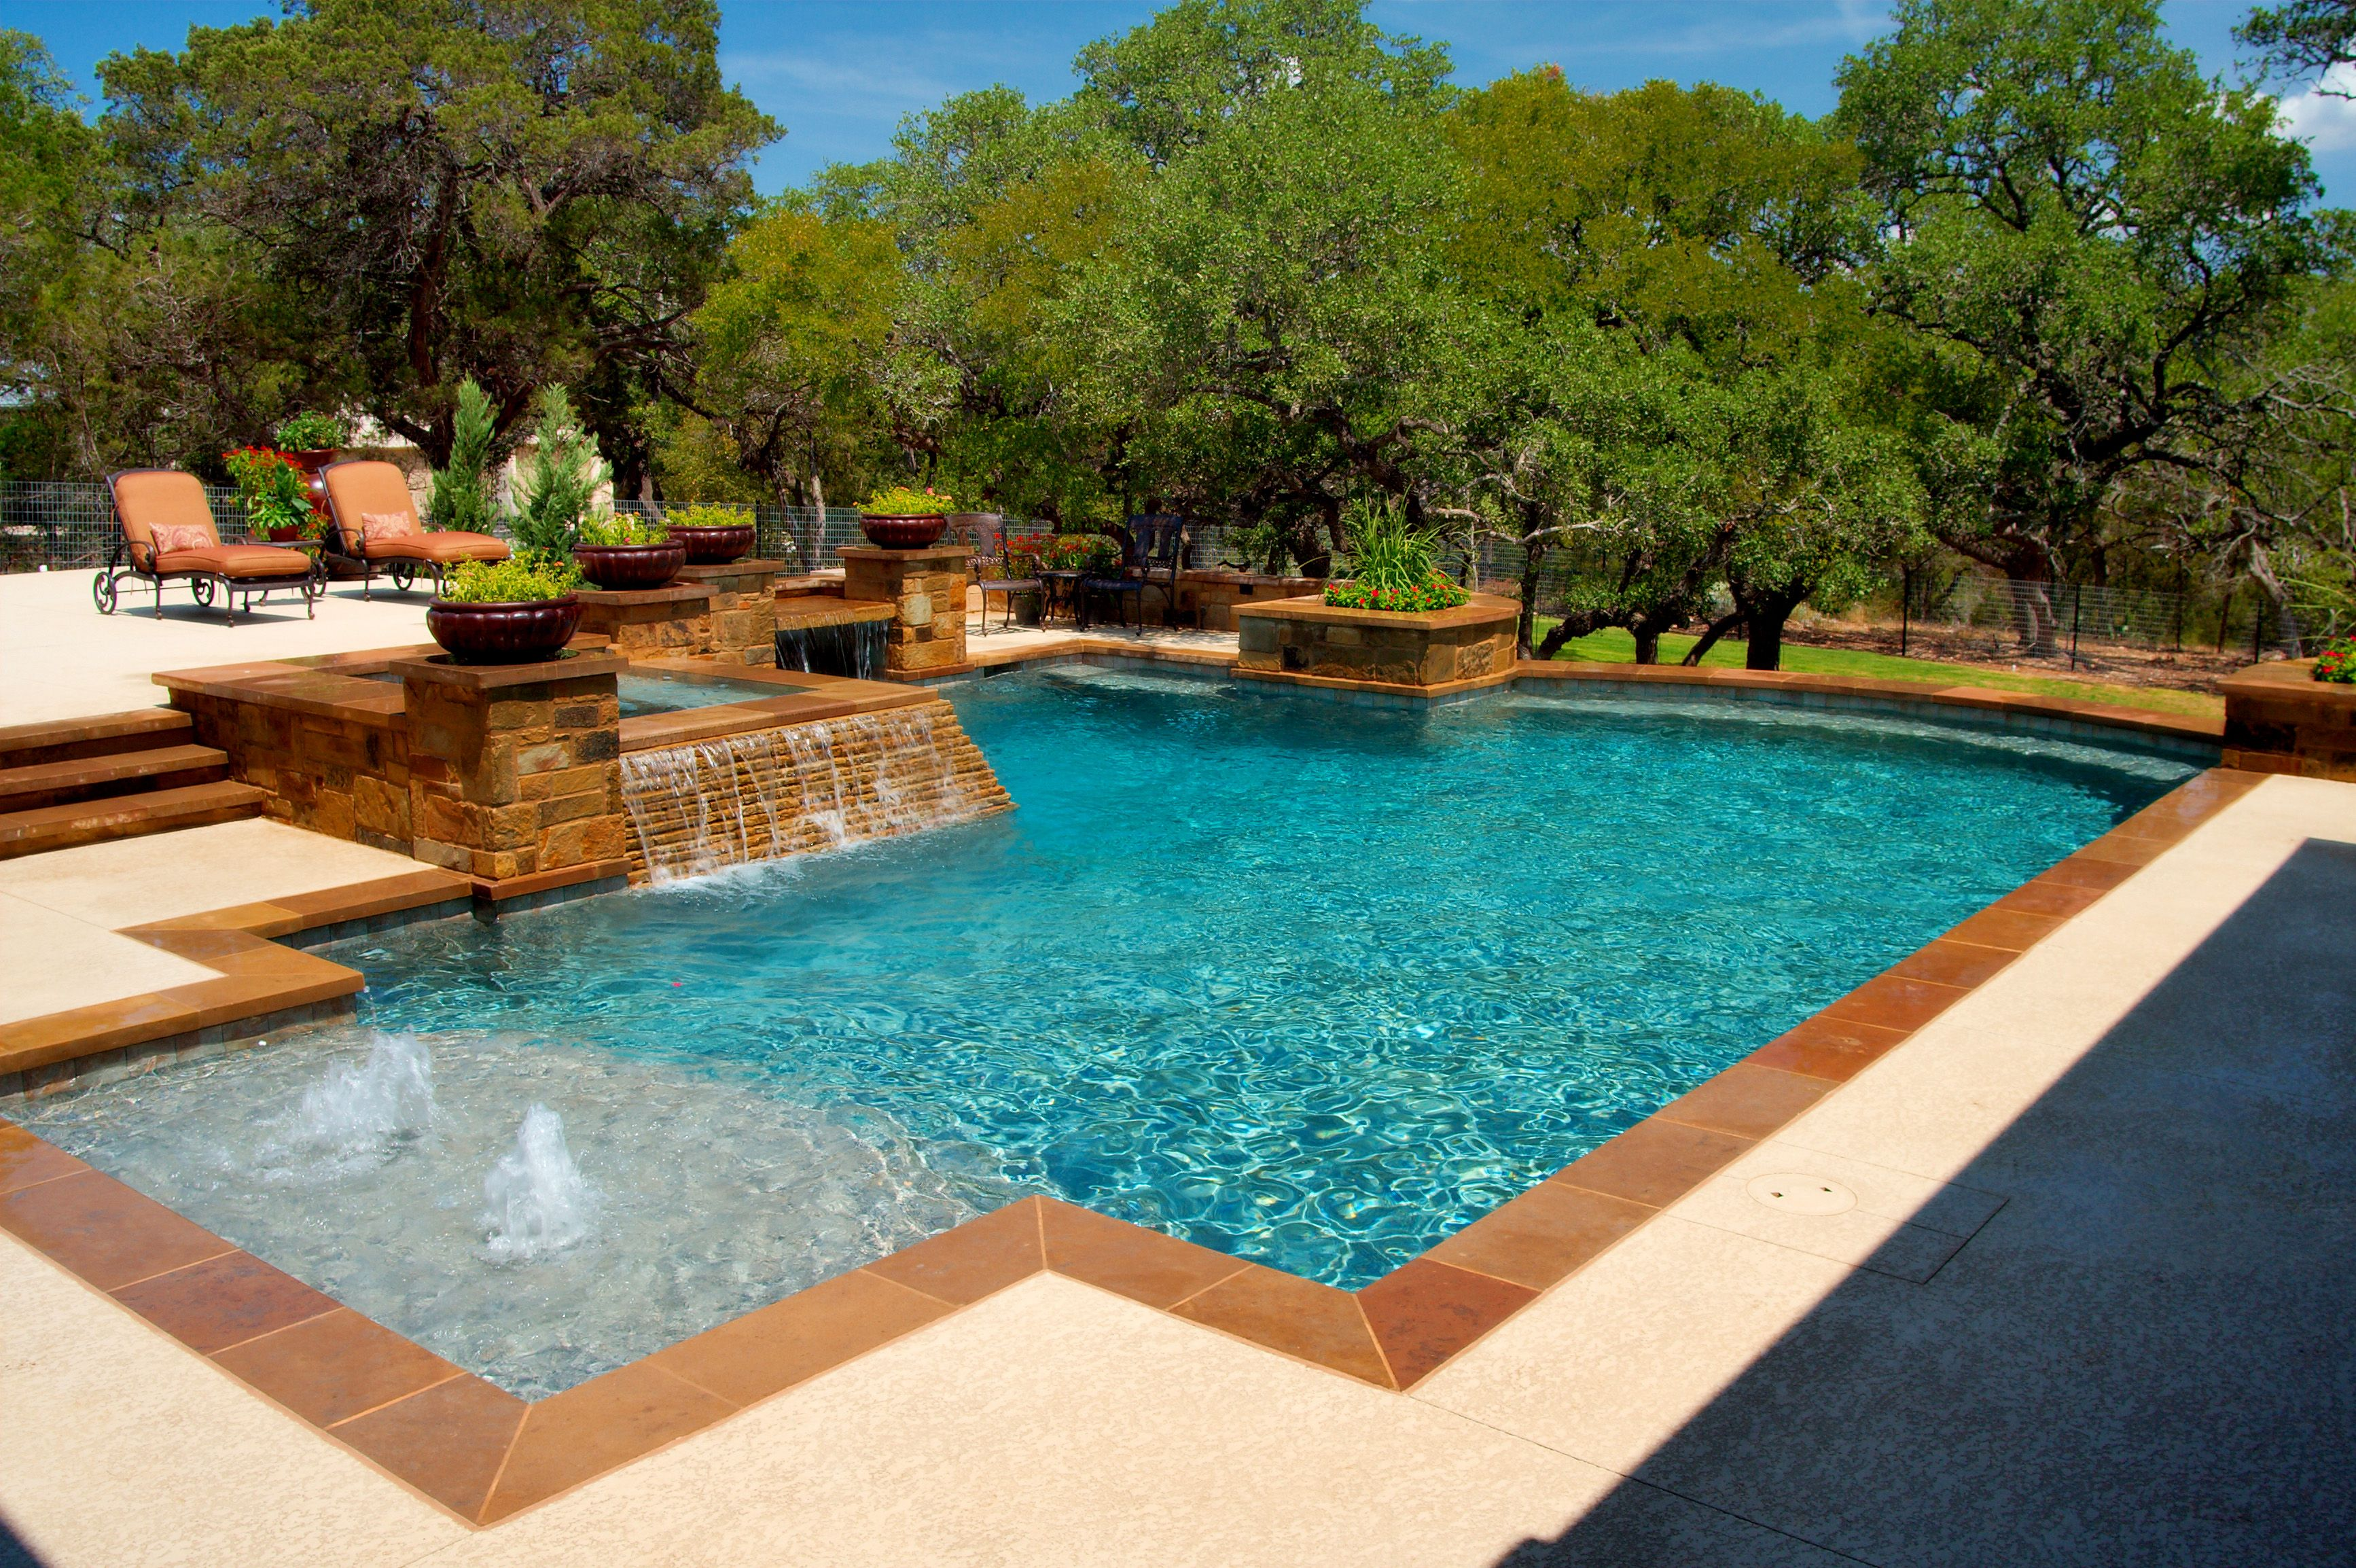 Geometric Swimming Pool Designs Google Search Inground Pool Designs Schwimmbad Designs Gartenpools